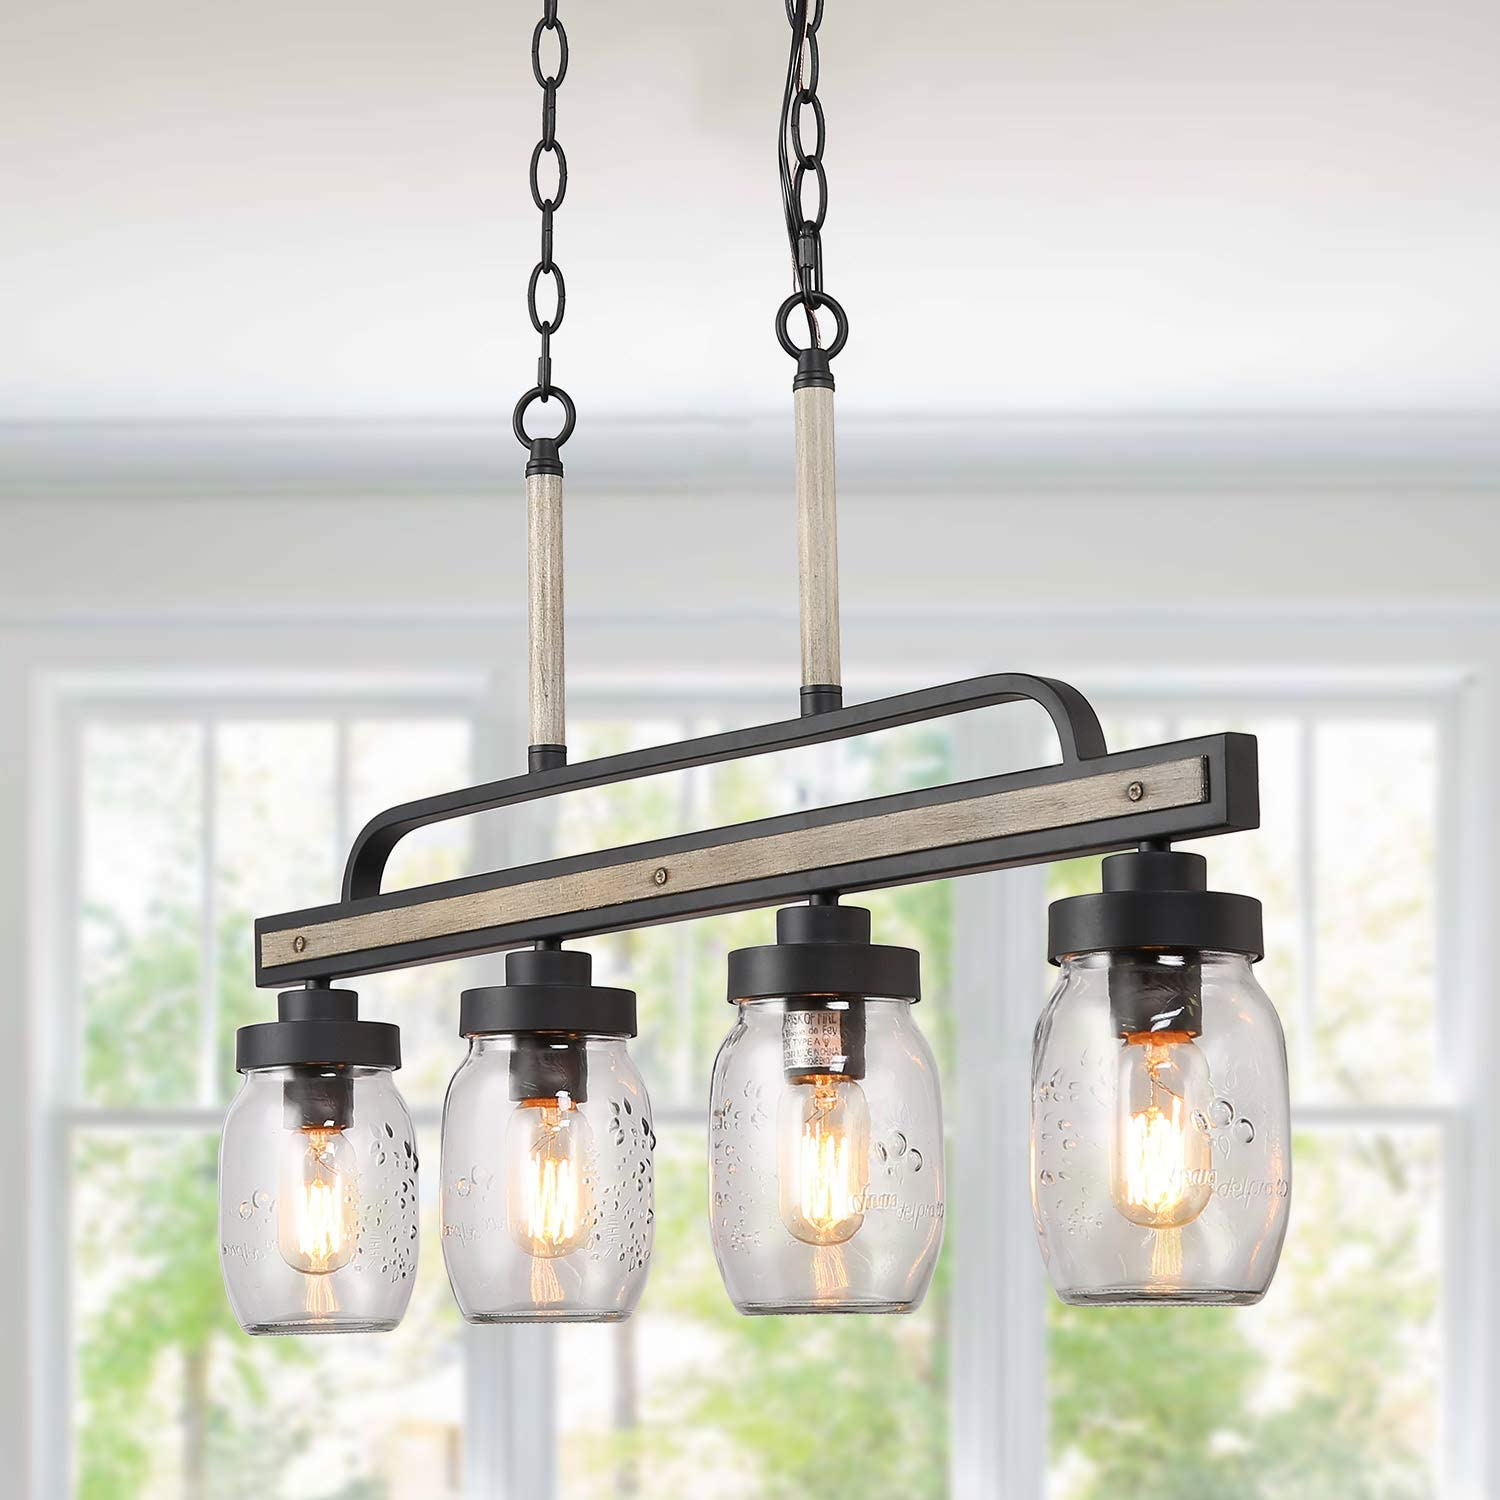 LOG BARN Rustic Mason Jar Pendant Lighting for Kitchen, 4 Lights Farmhouse Chandelier in Distressed Faux Wood and Dark Grey Metal Finish, 30 Large Dining Room Linear Lighting